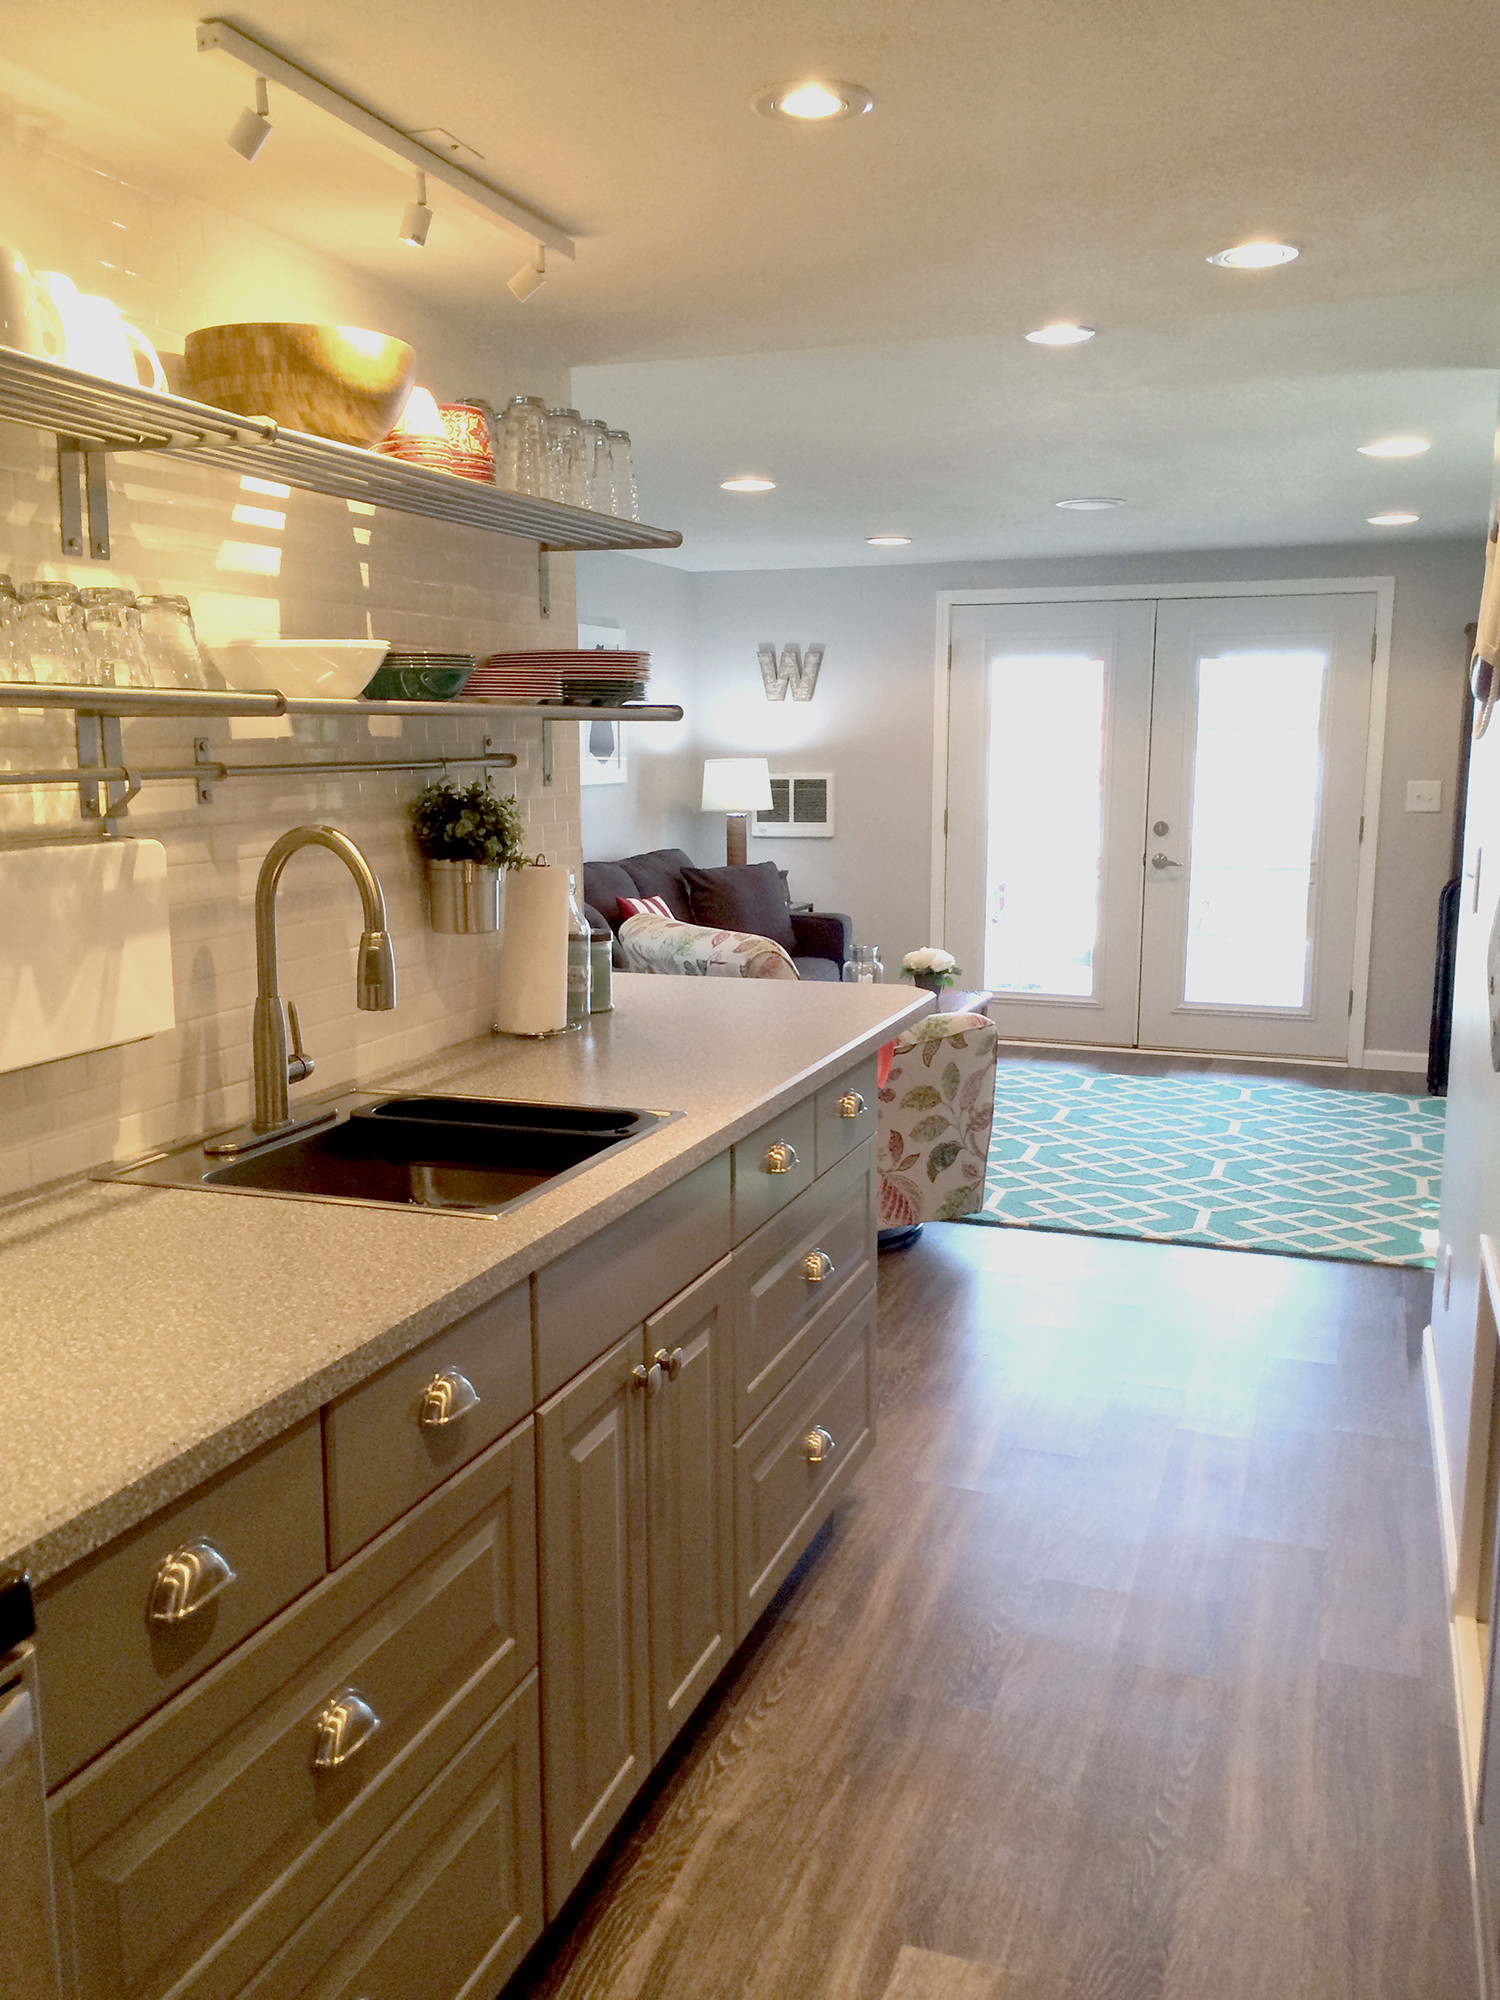 75 Beautiful Kitchen With Gray Cabinets And Laminate Countertops Pictures Ideas February 2021 Houzz